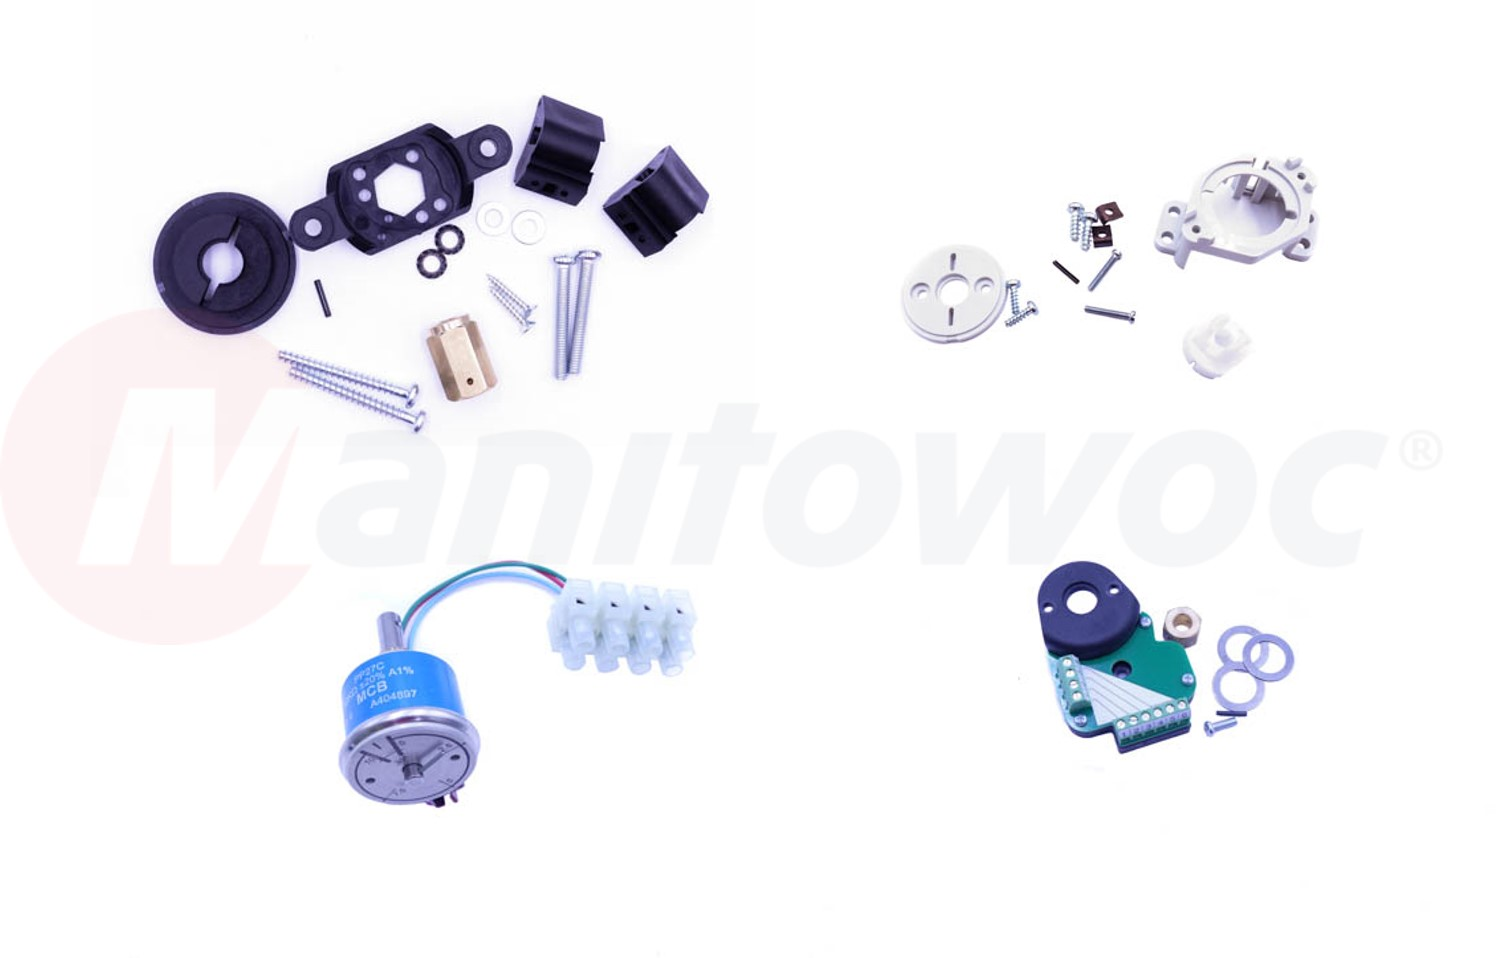 84015974 - KIT POT FDC 3 SUPPORT